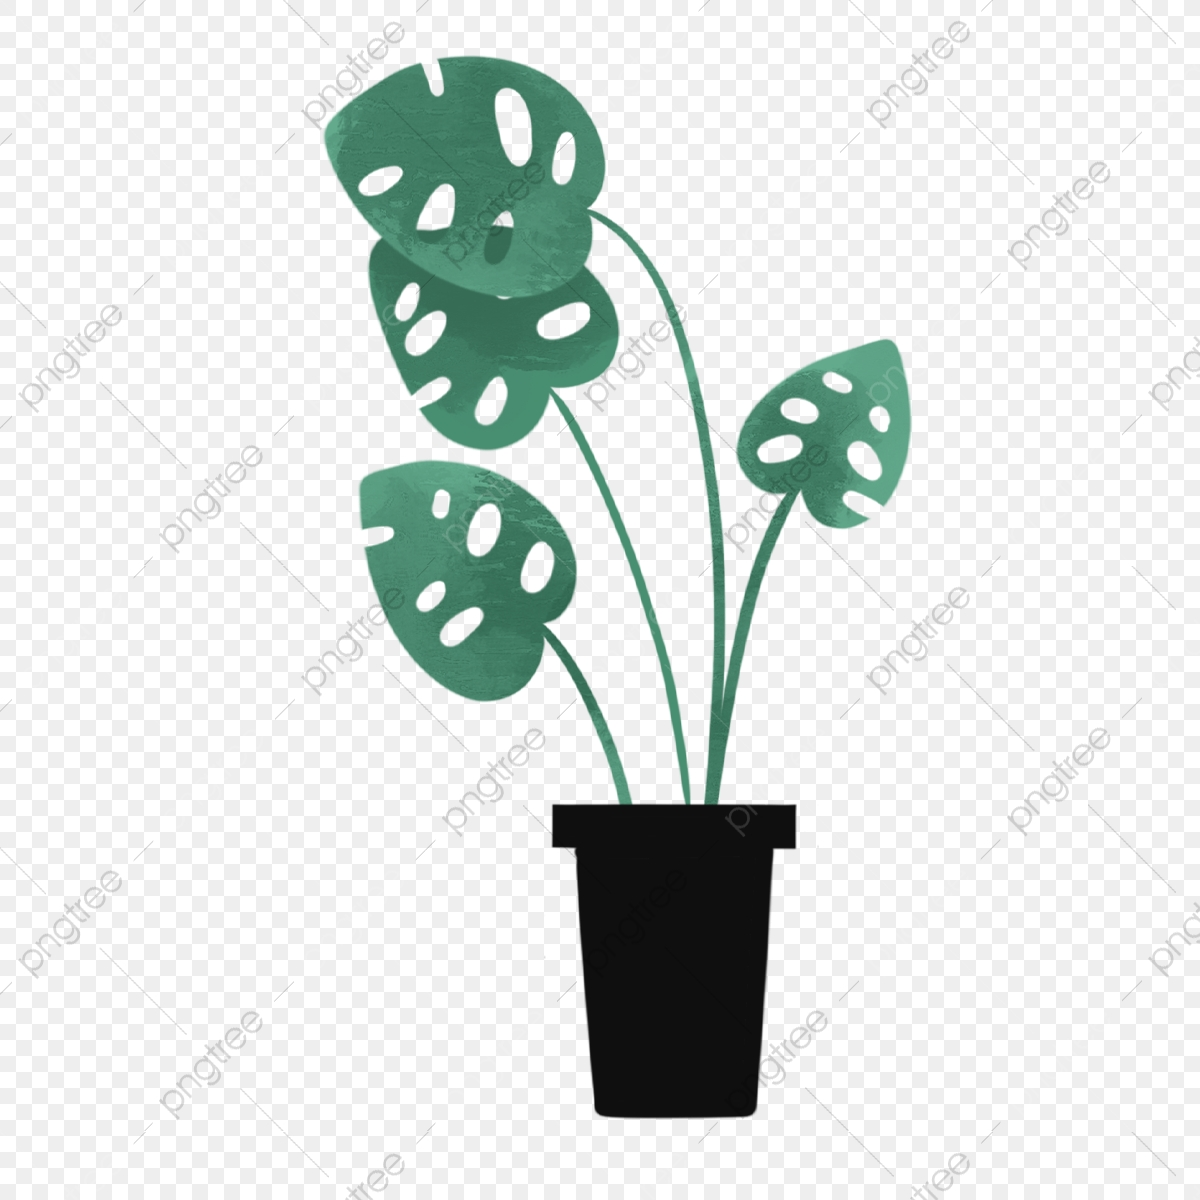 Hand Drawn Cute Plants Cute Hand Drawn Summer Png Transparent Clipart Image And Psd File For Free Download